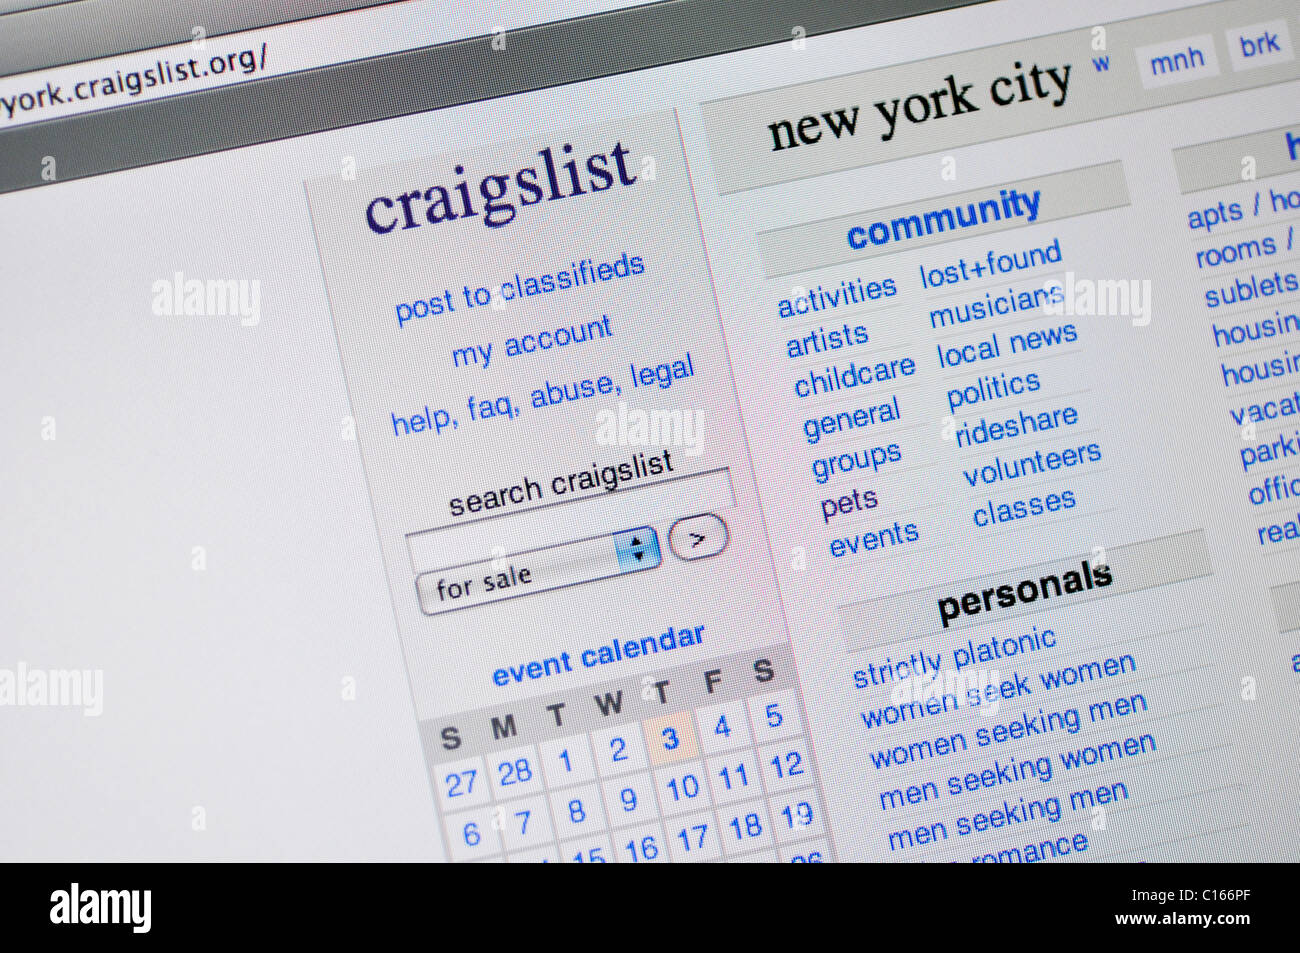 Craigslist Stock Photos Craigslist Stock Images Alamy